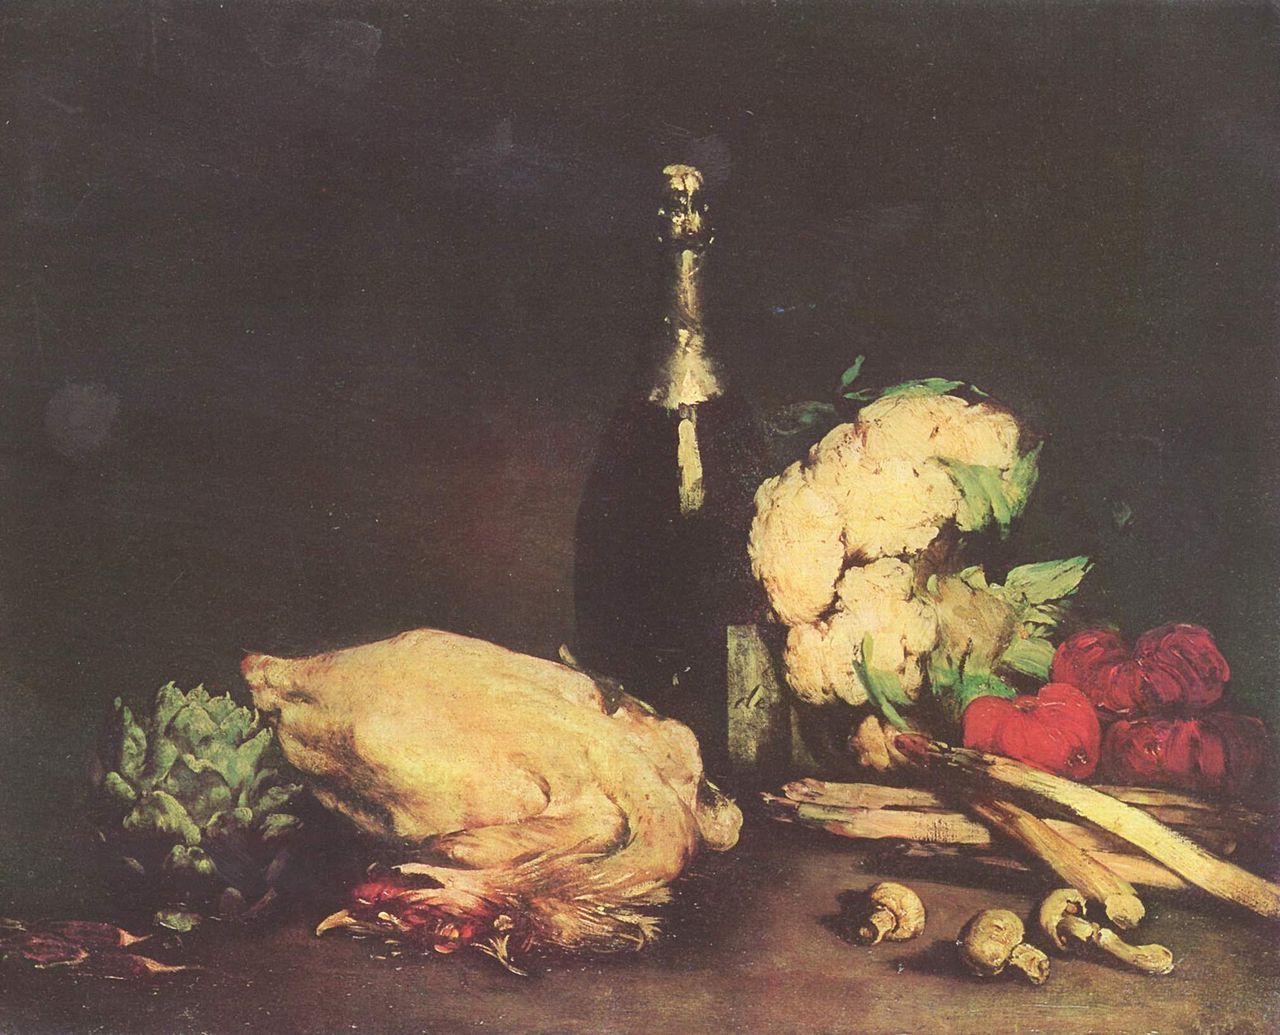 """Théodhule-Augustin Ribot: """"Still life"""", 1865, oil on canvas, Dimensions: 60 × 74.5 cm, Current location: Museum of Fine Arts Budapest."""